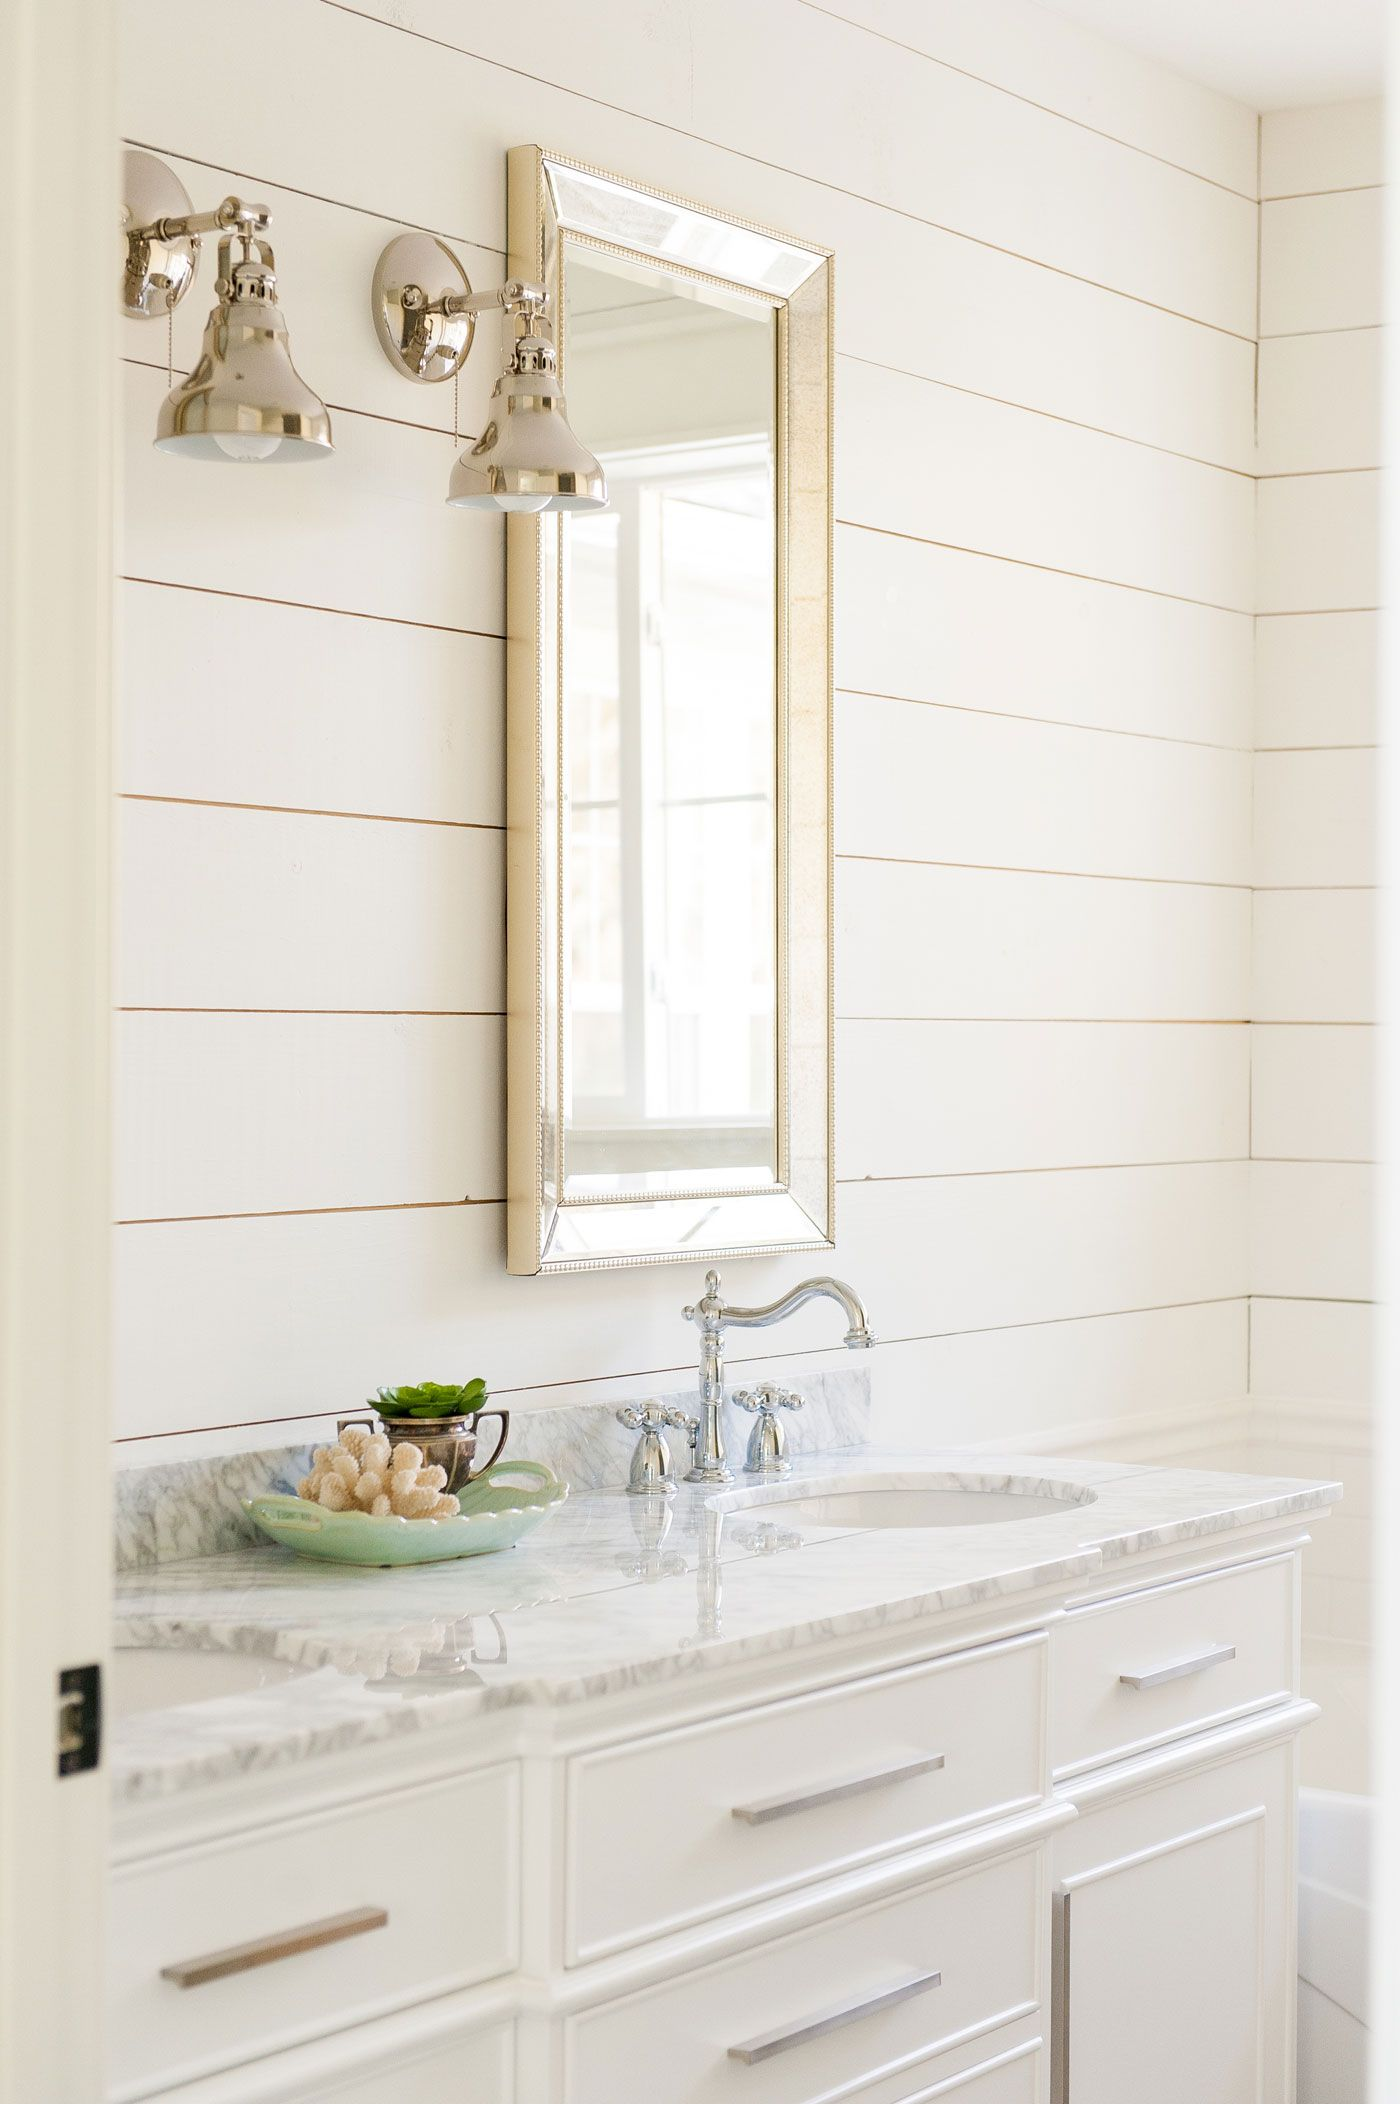 Sharing The 5 Best White Paint Colors To Shiplap See If Your Favorite Made List